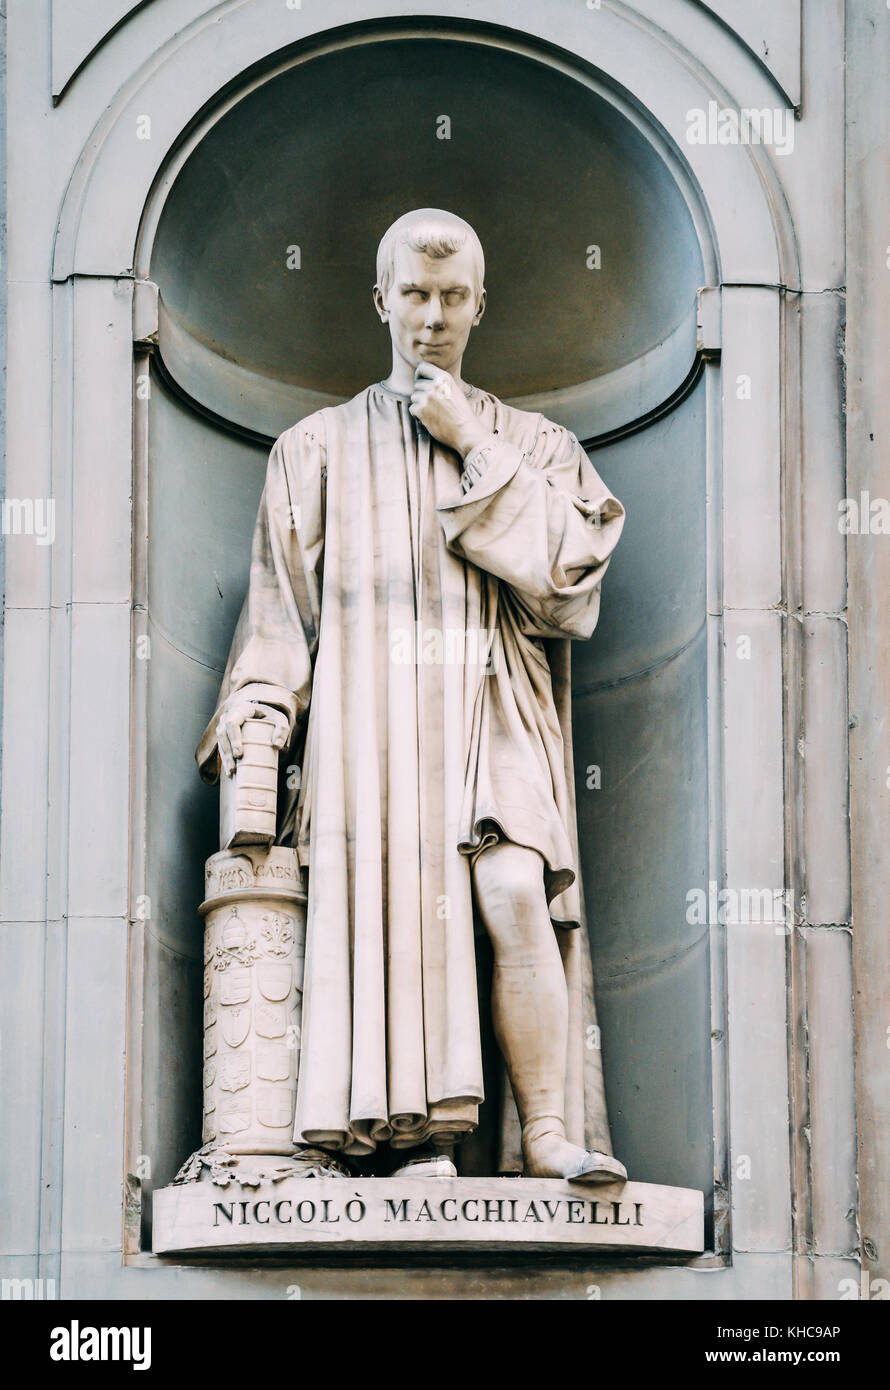 Statue of Niccolo Macchiavelli, medieval politician and writer, outside the Uffizi Galleries in Florence, Tuscany, Stock Photo